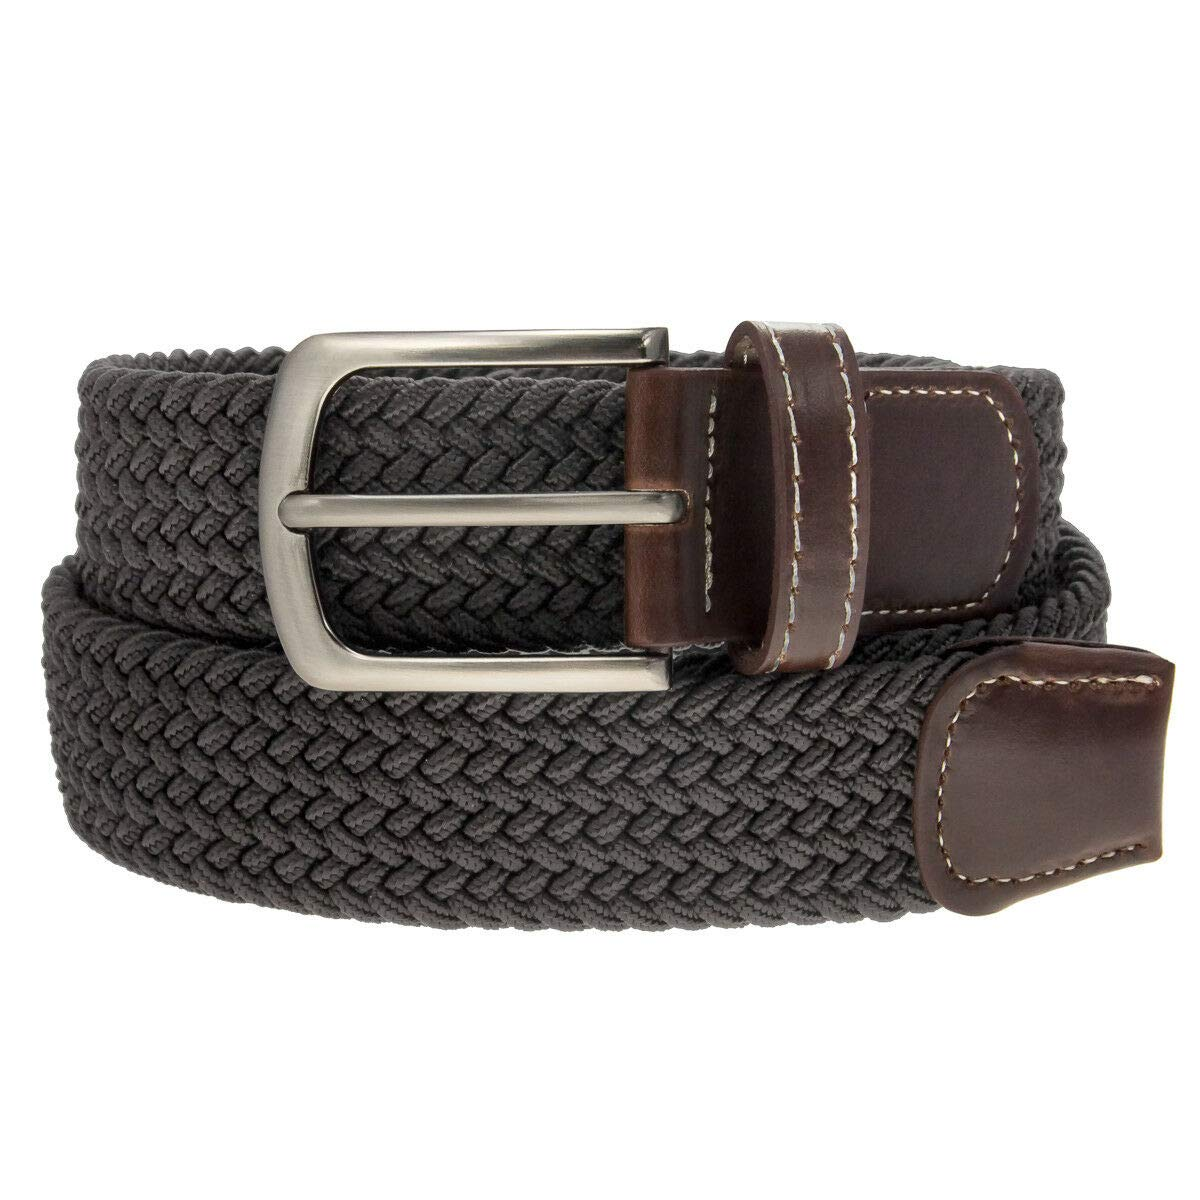 Durable Braided Belt Nickel Finish Buckle Faux Leather Elastic Woven Stretch Mens Womens Color Grey Size S